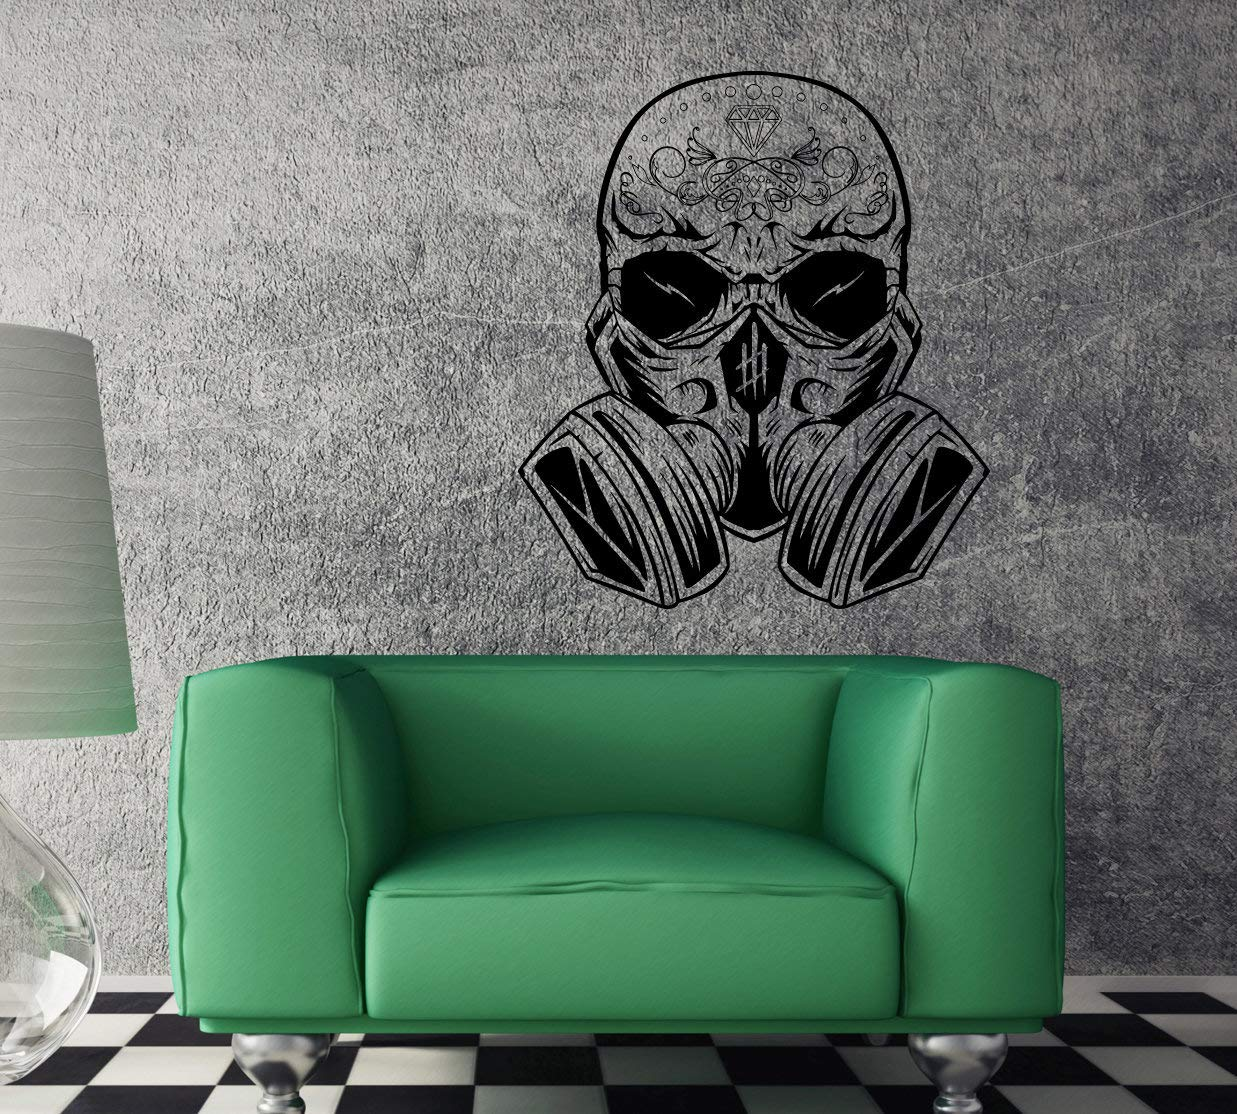 Wall Stickers Decal for Living Room Hippie Skull with Gas Mask Unique Decal Peel and Stick Decorative Self Adhesive Christmas Decoration for Home Nursery 29.5 Inch